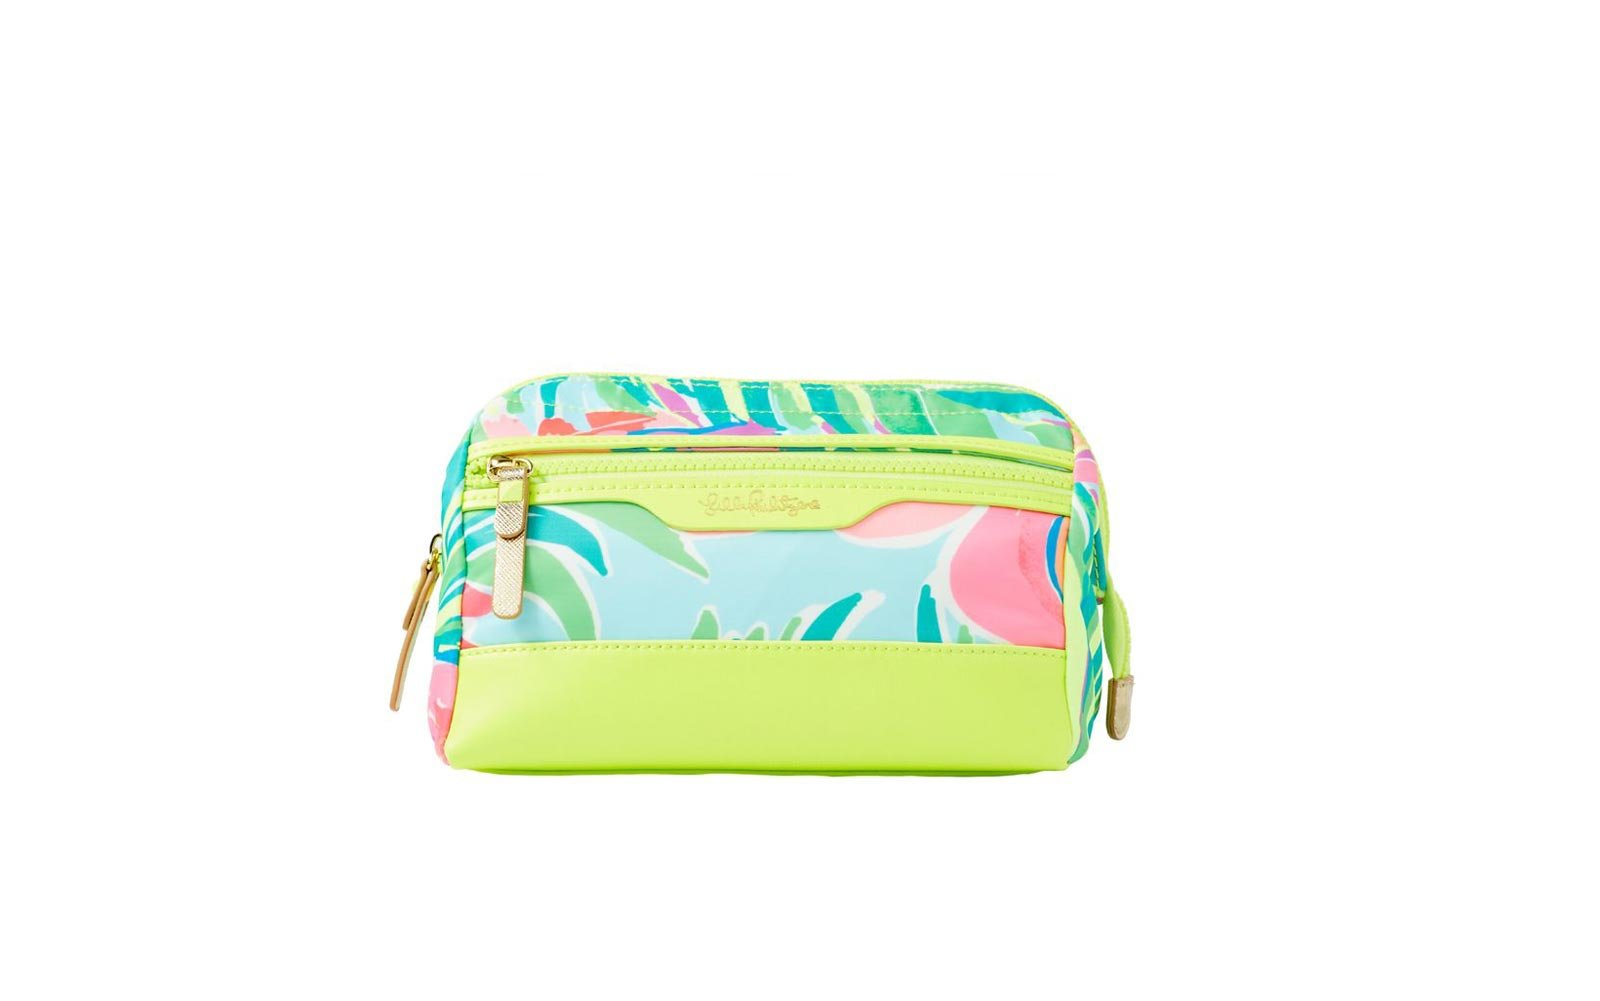 46cd8a0be6 Weekend  Lilly Pulitzer Travel Dopp Cosmetic Case